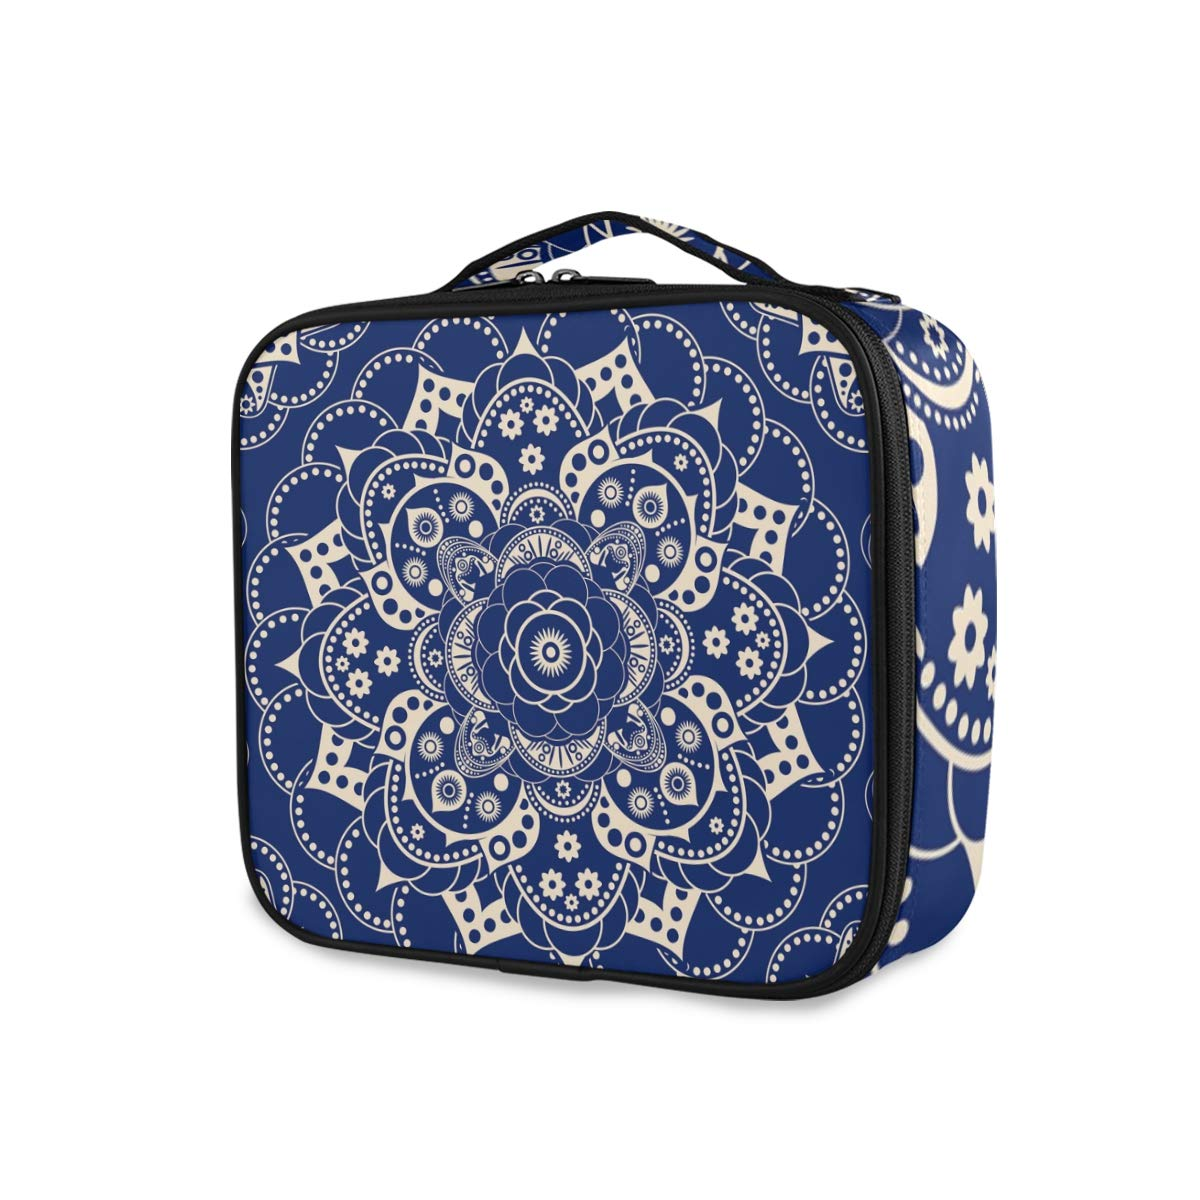 ALAZA Travel Makeup Case, Tribal Ethnic Floral Mandala Pattern Blue Cosmetic toiletry Travel bag for Women Girls